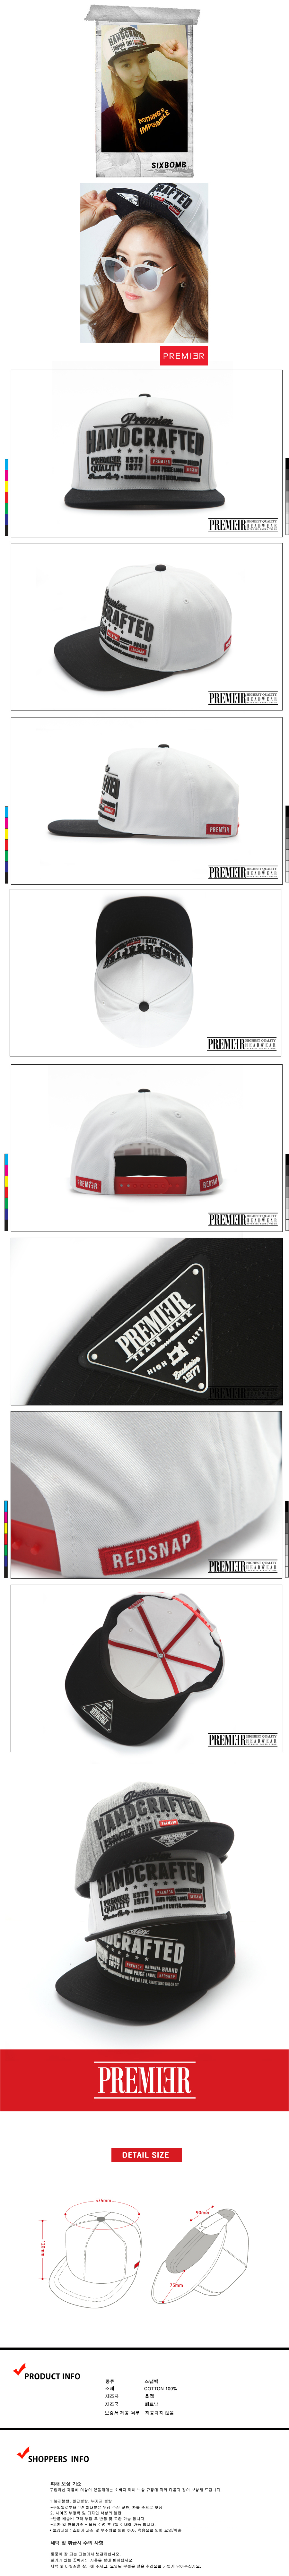 [ PREMIER ] [Premier] Red Snap Handcraft Lover White/Black